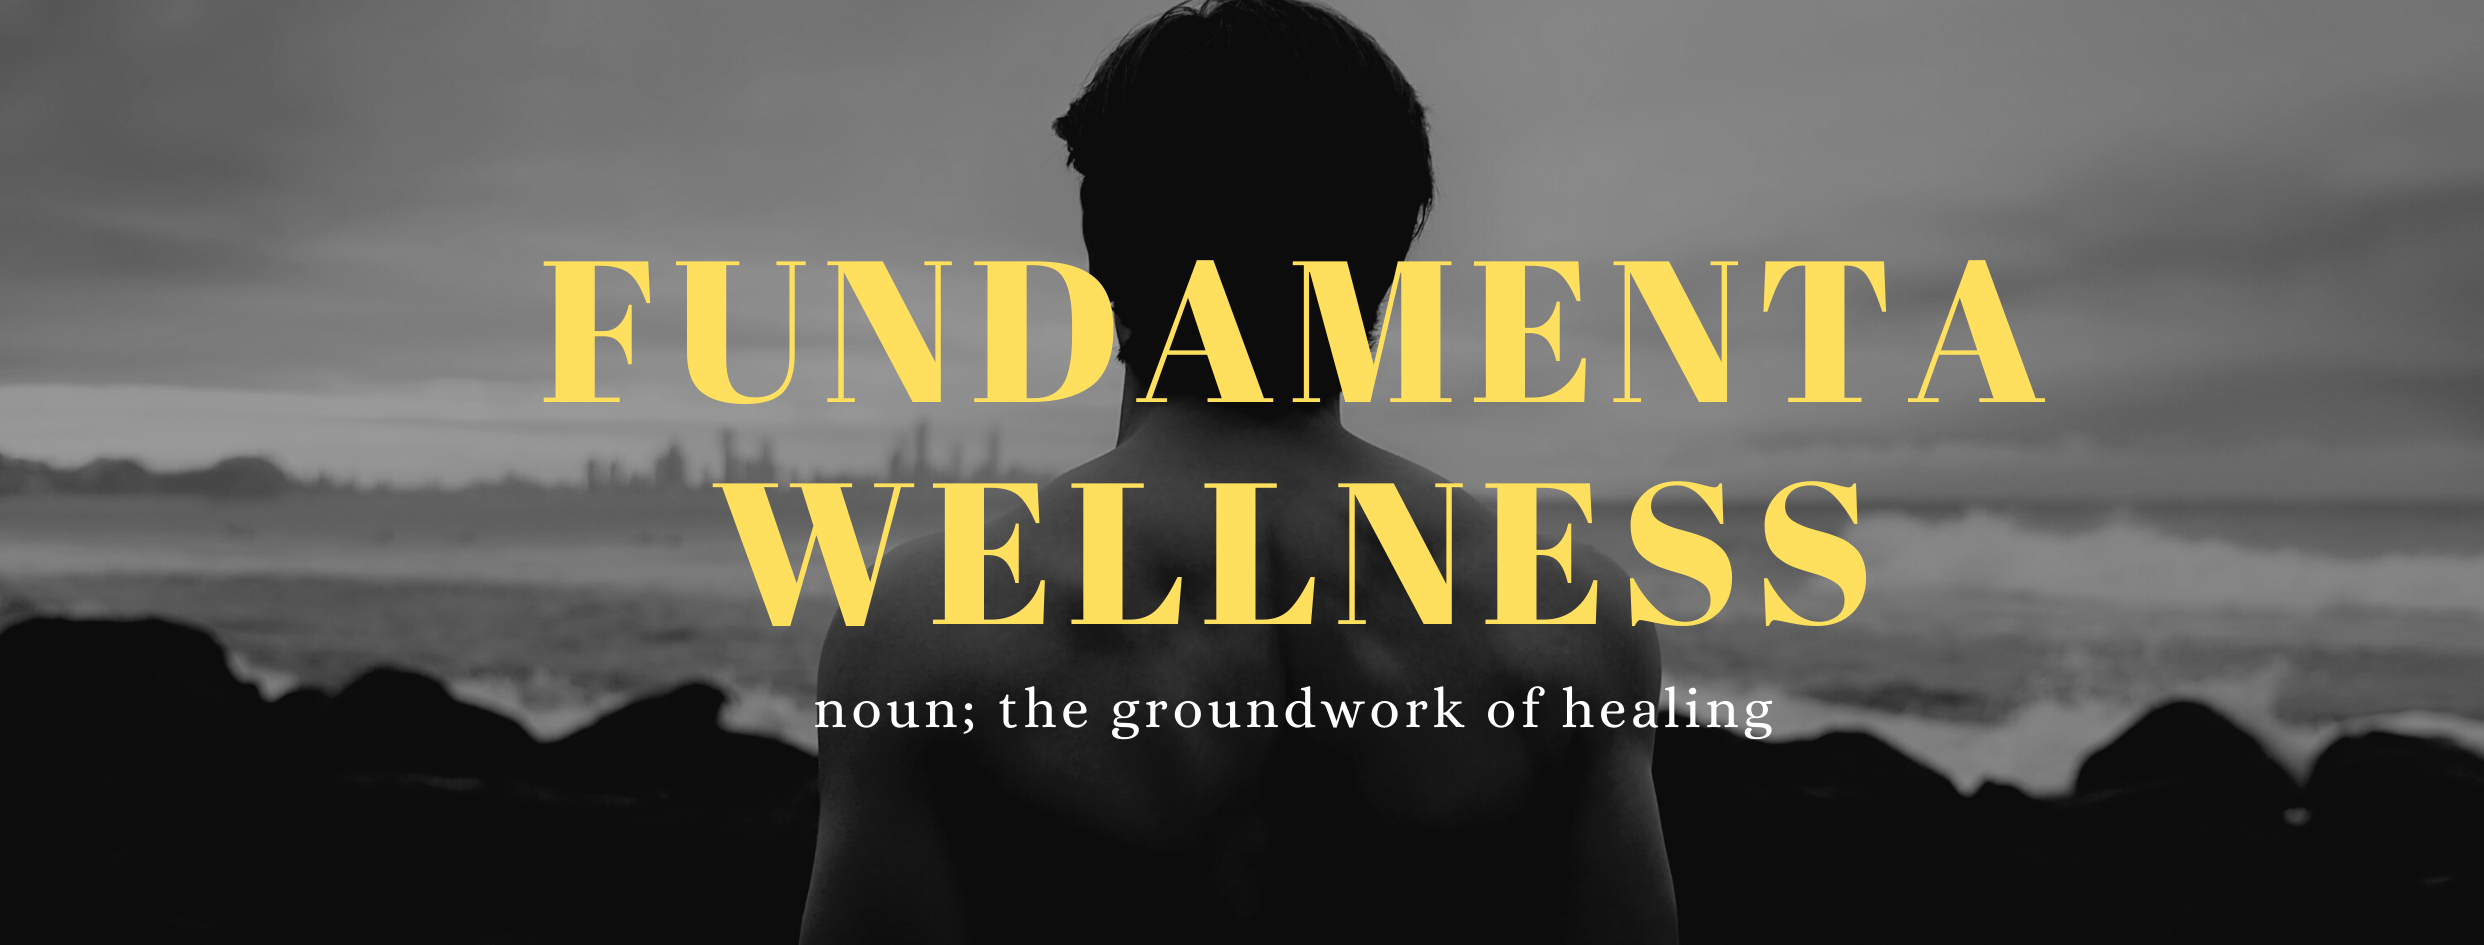 fundamenta wellness logo